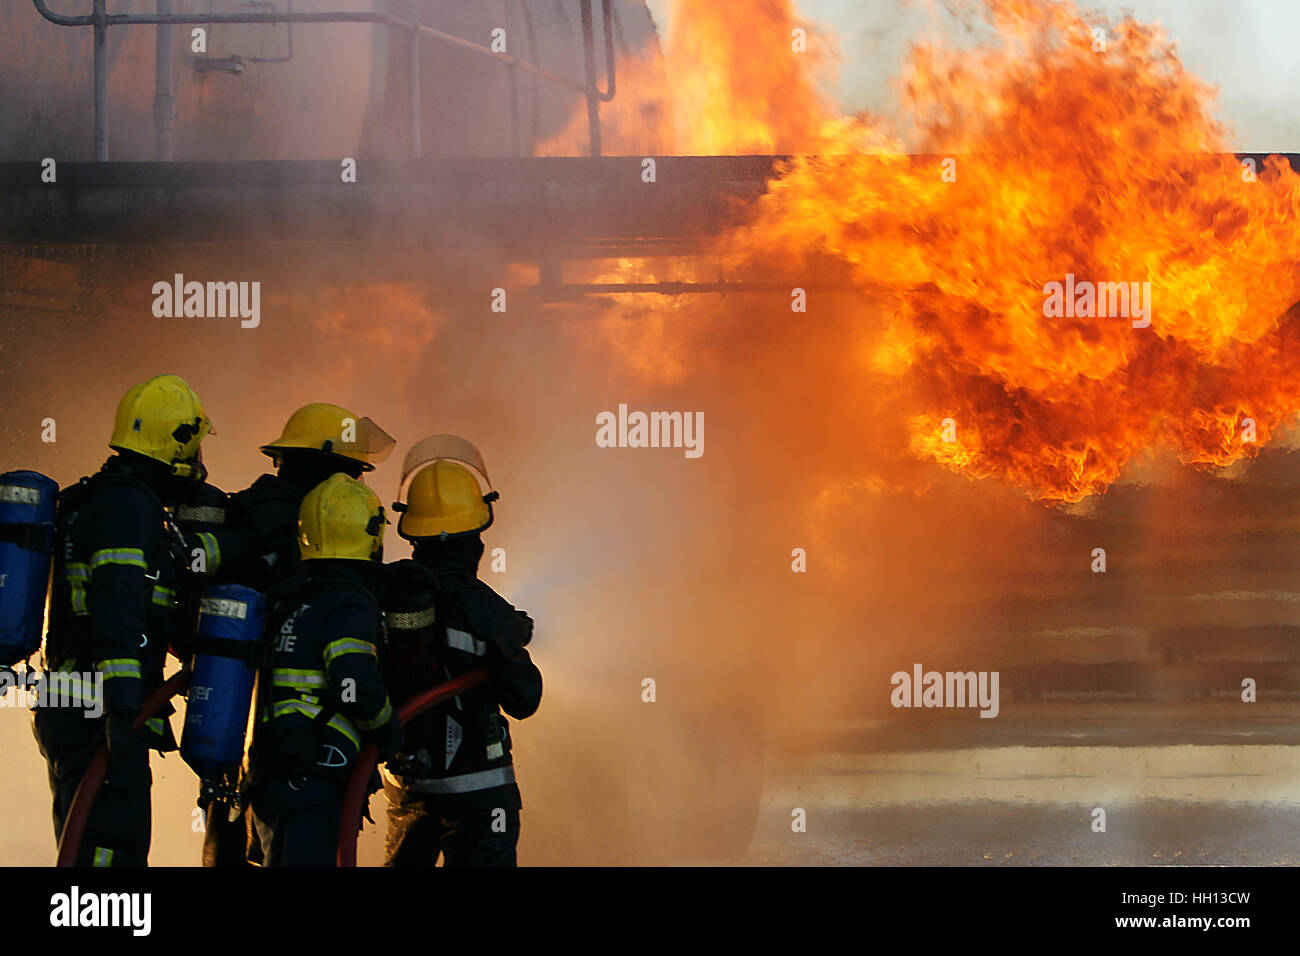 terrorist attack, fire ball explosion - Stock Image